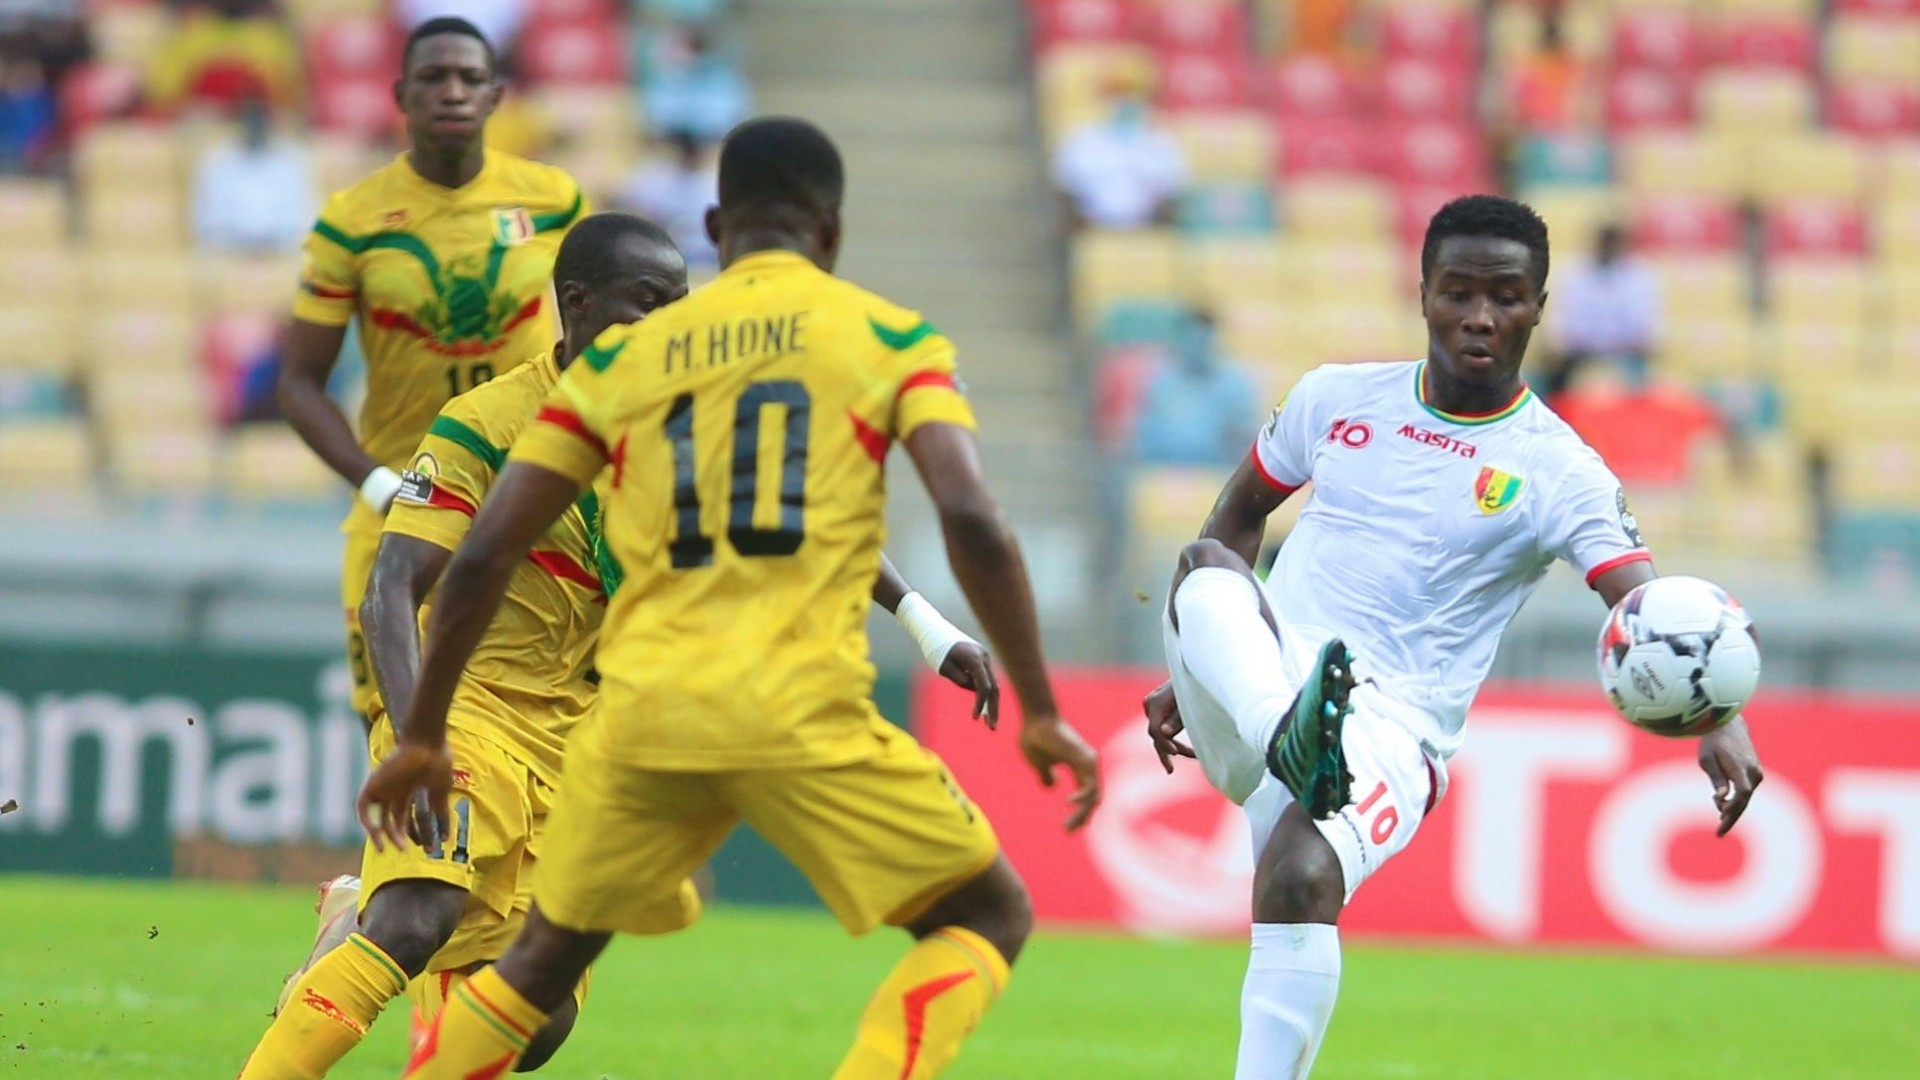 Chan 2021 Wrap: Classy Morocco defeat Cameroon to join Mali in final